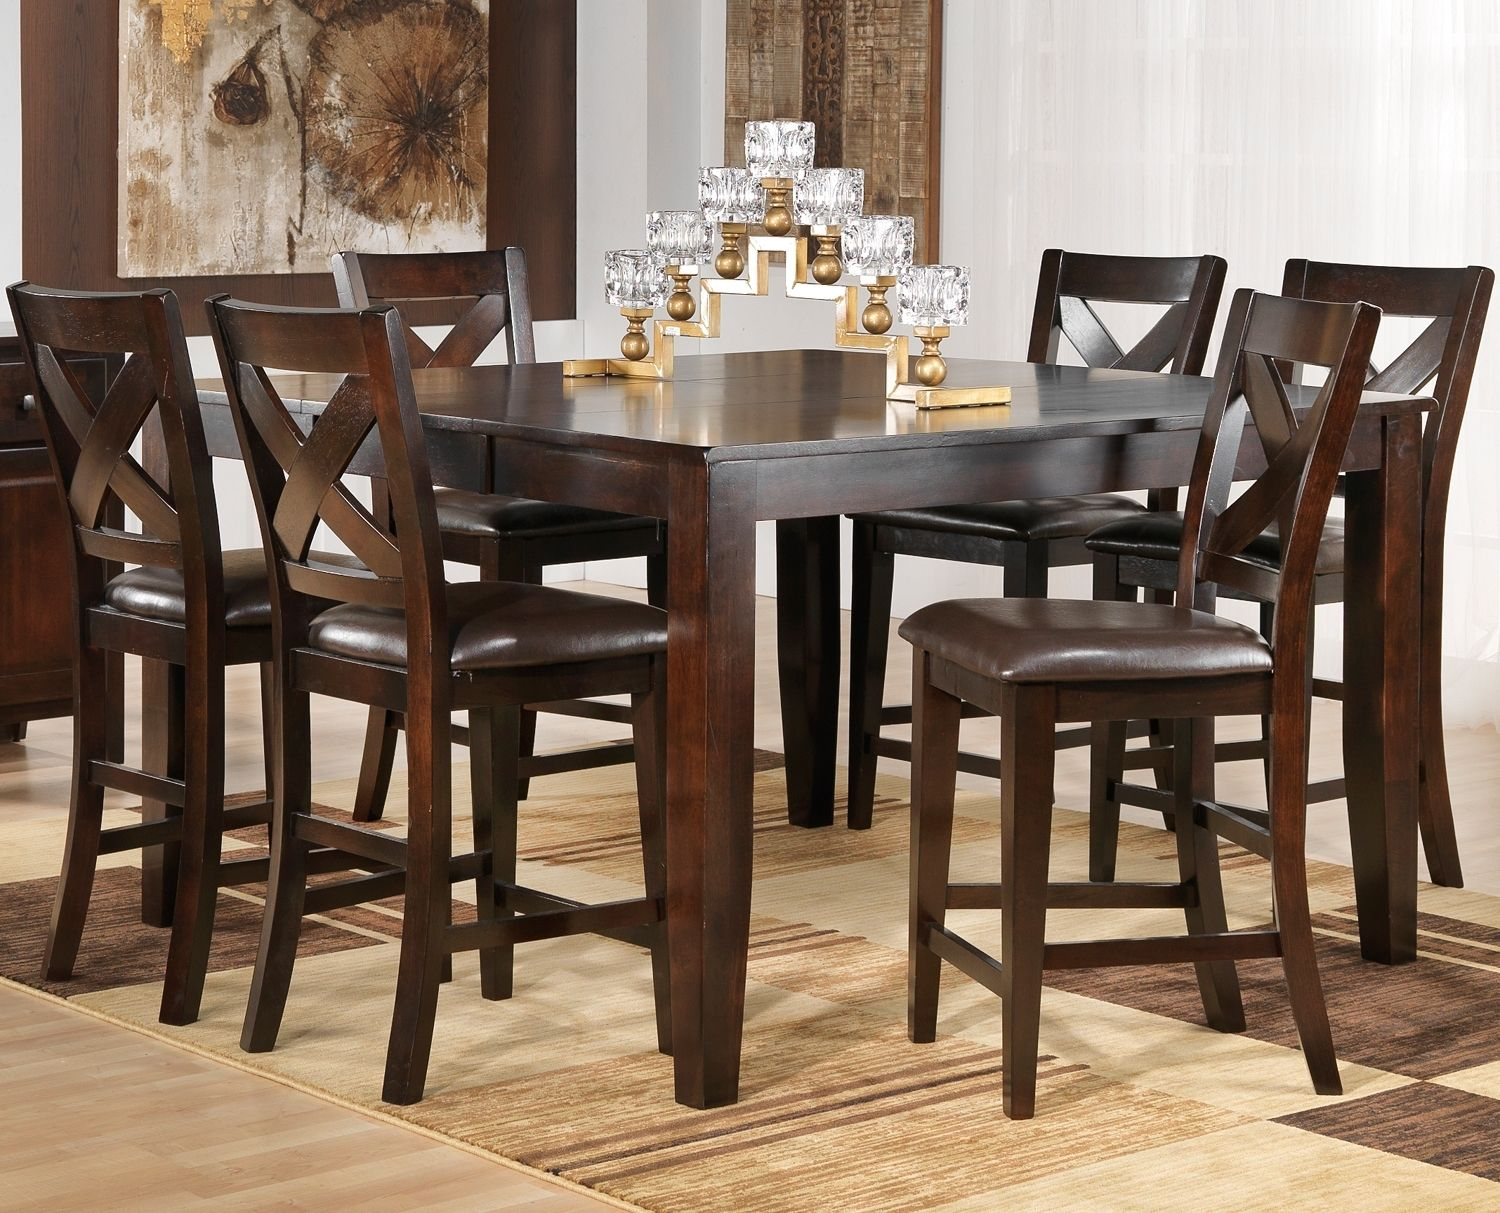 Pub Set Dining Room Tables Kitchen Table